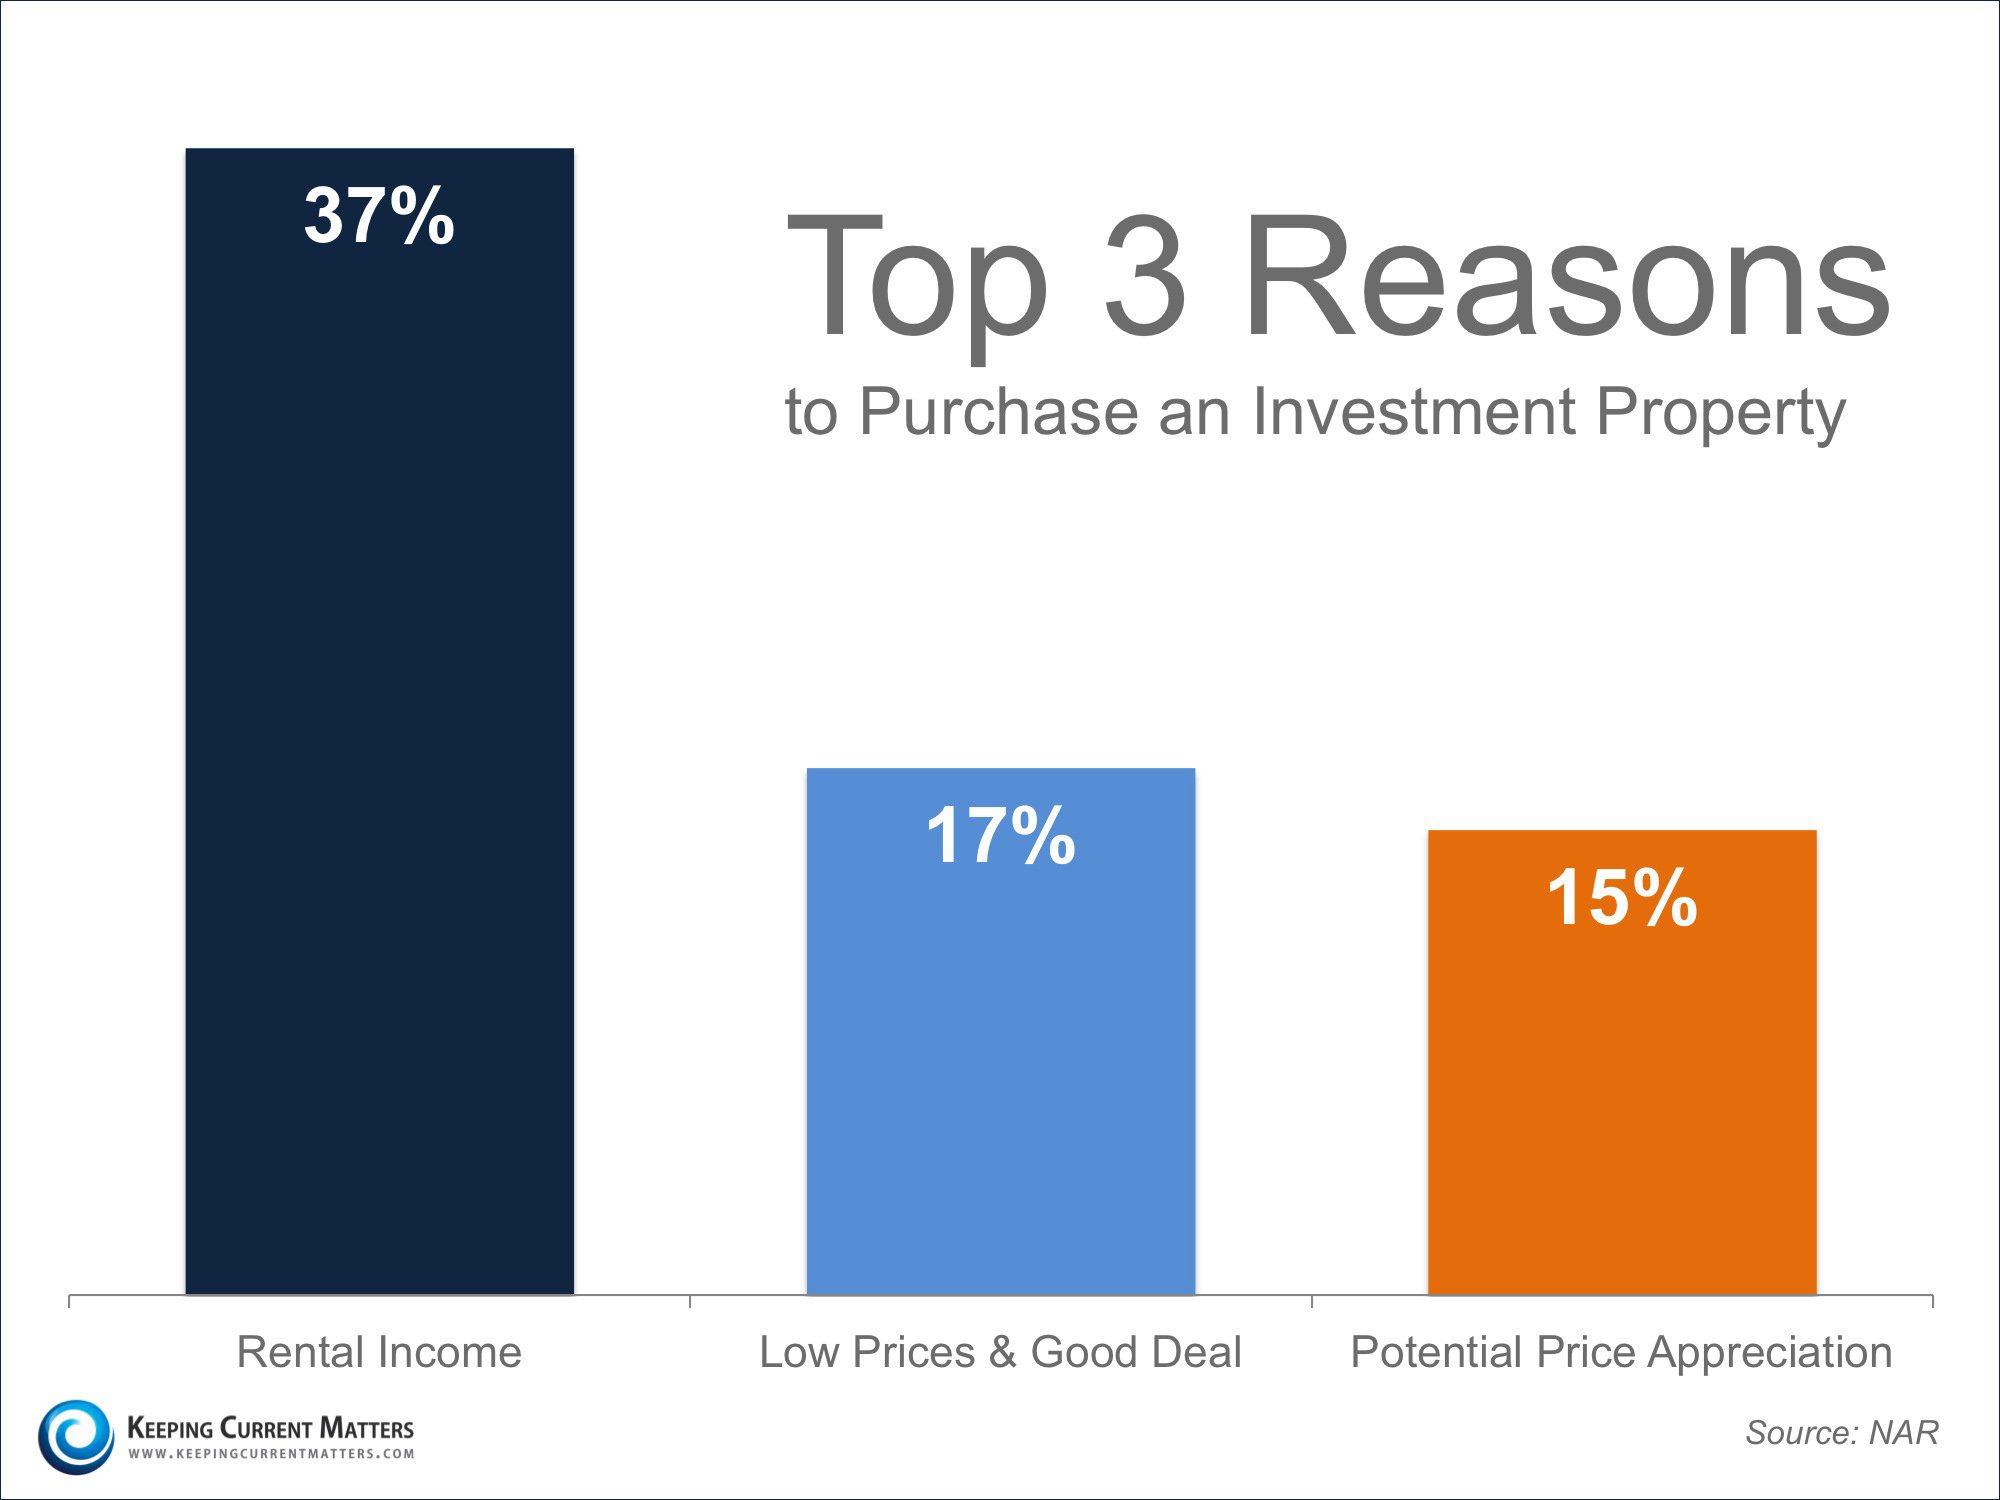 Top 3 Reasons To Buy | Keeping Current Matters